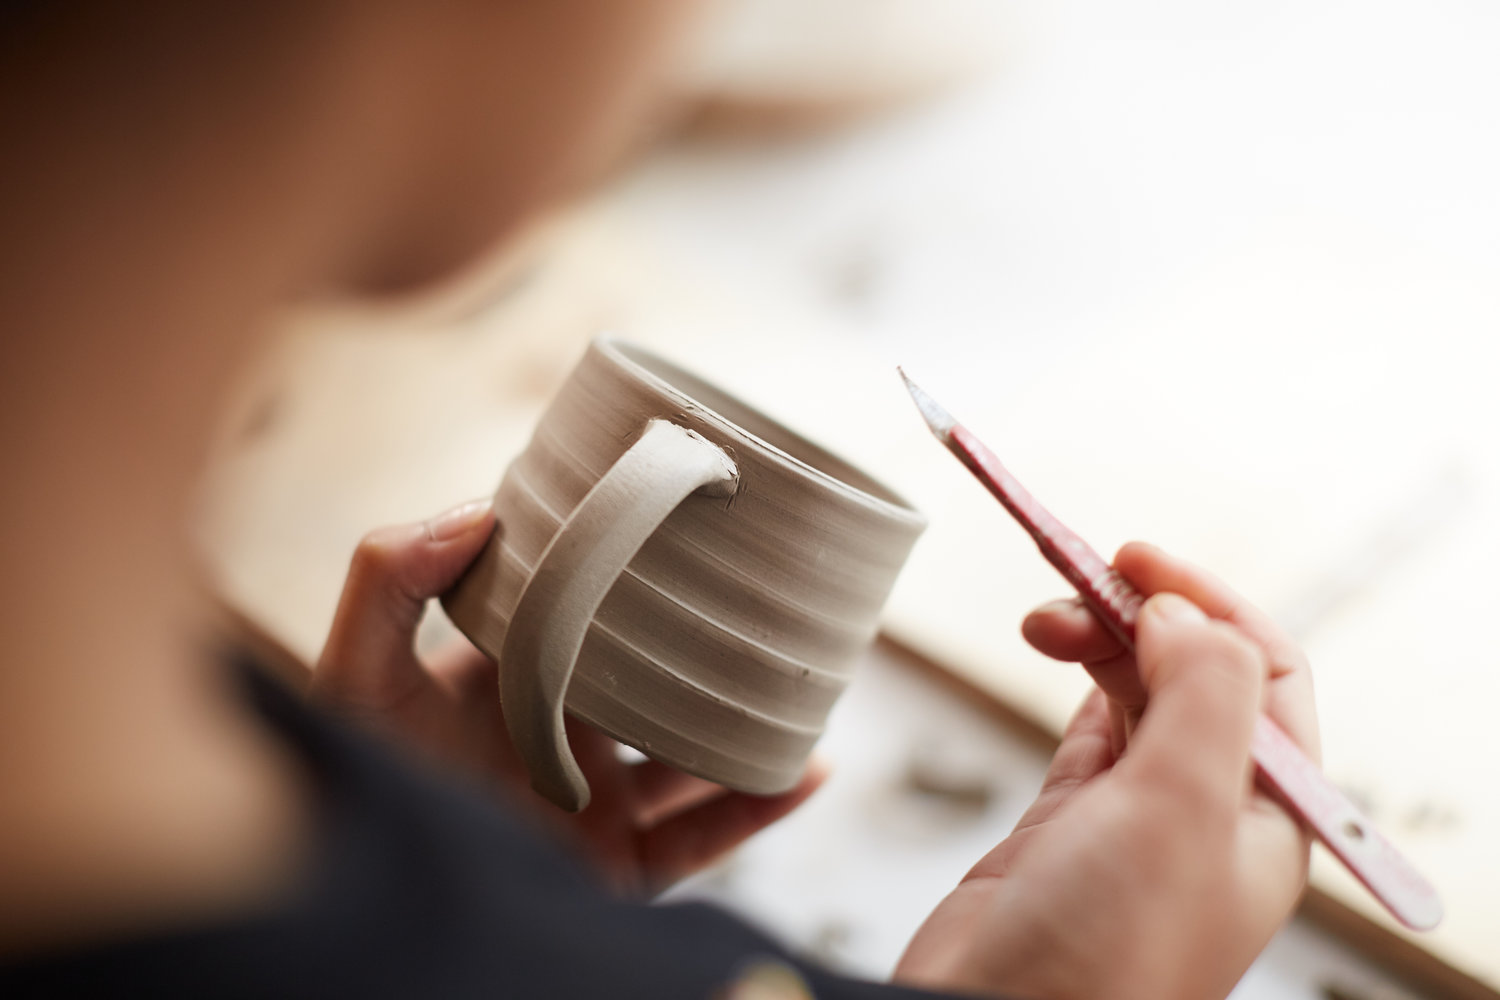 STANDARD POTTERY: MAKE A MUG - Thursday 12th September, 6-8.30pmEver wanted to make your own mug? Look no further than this session with Standard Pottery.